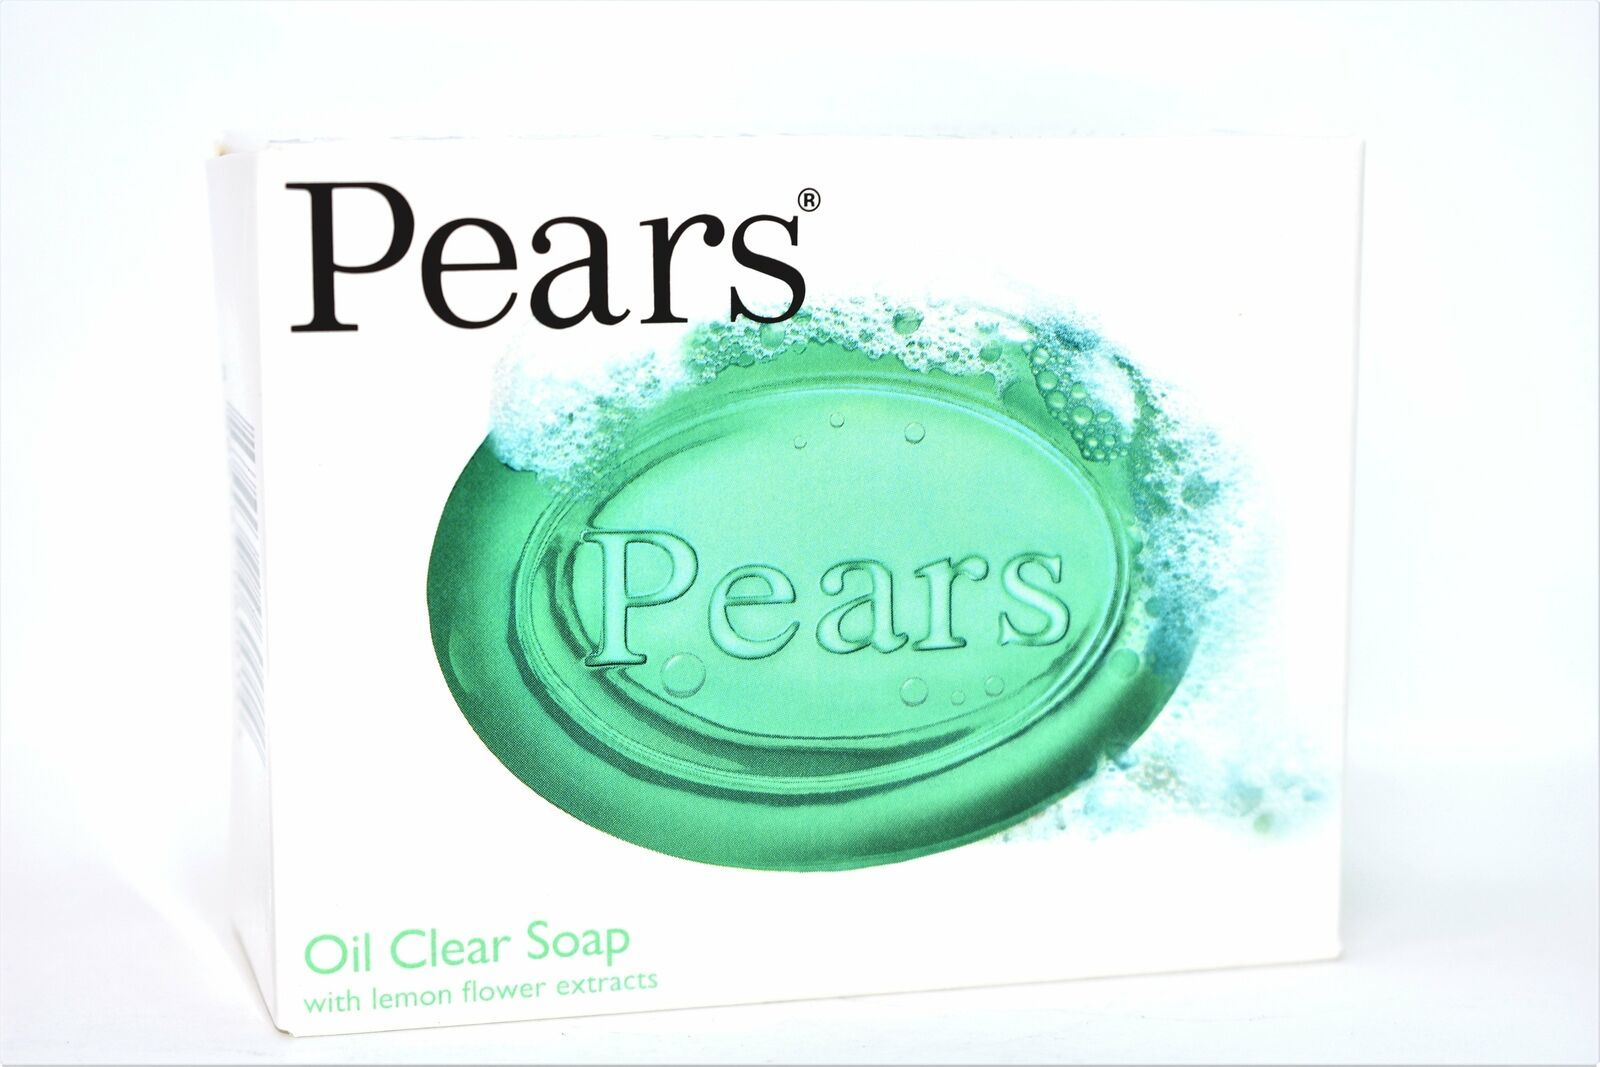 Pears Oil Clear Soap With Lemon Flower Extracts Bar Soap, 100g, 1 ct.